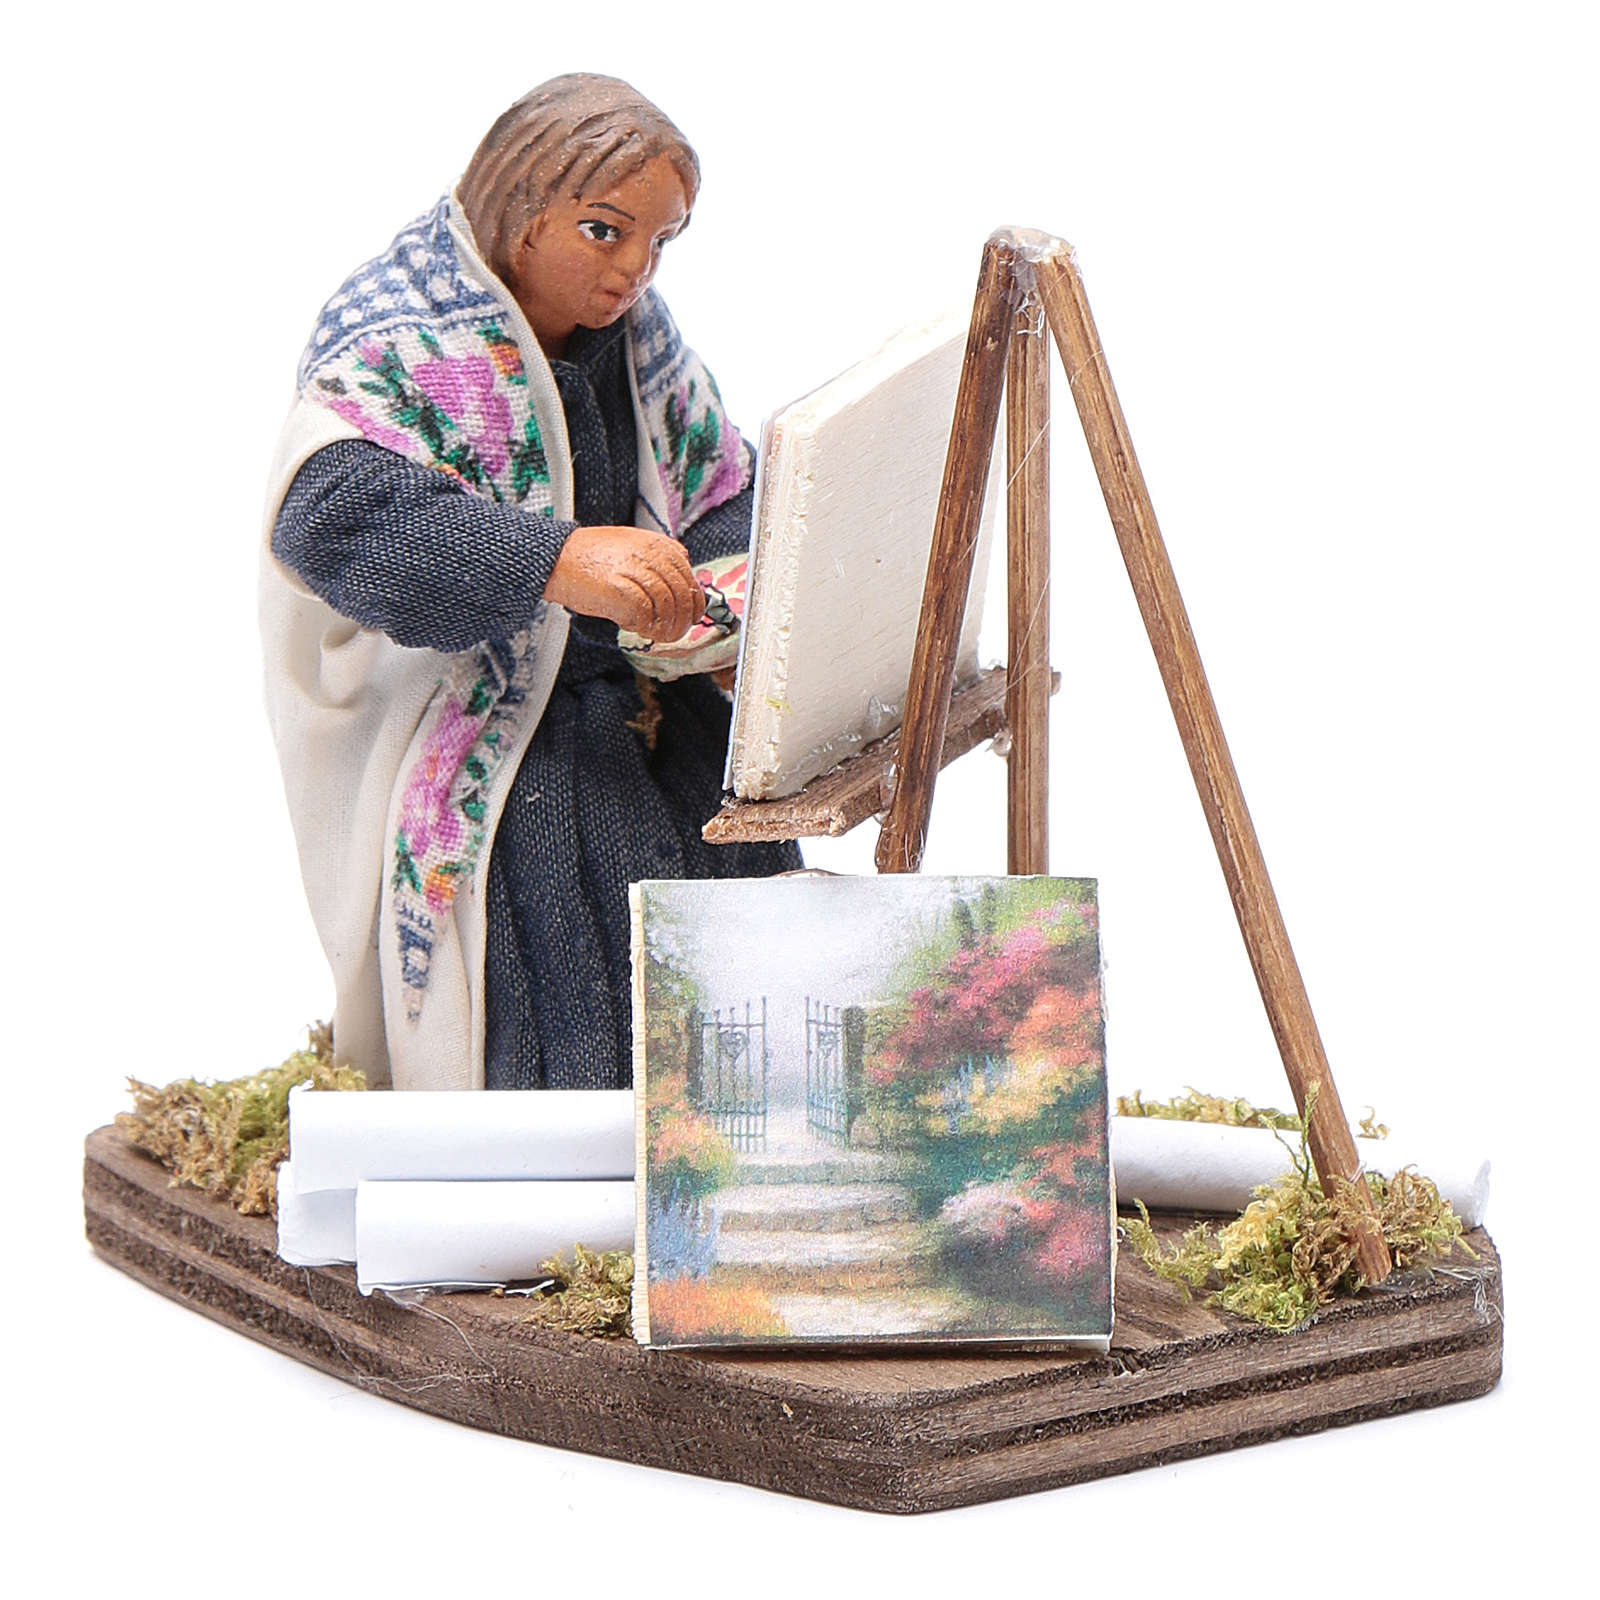 Woman painting, Neapolitan nativity figurine 10cm 4